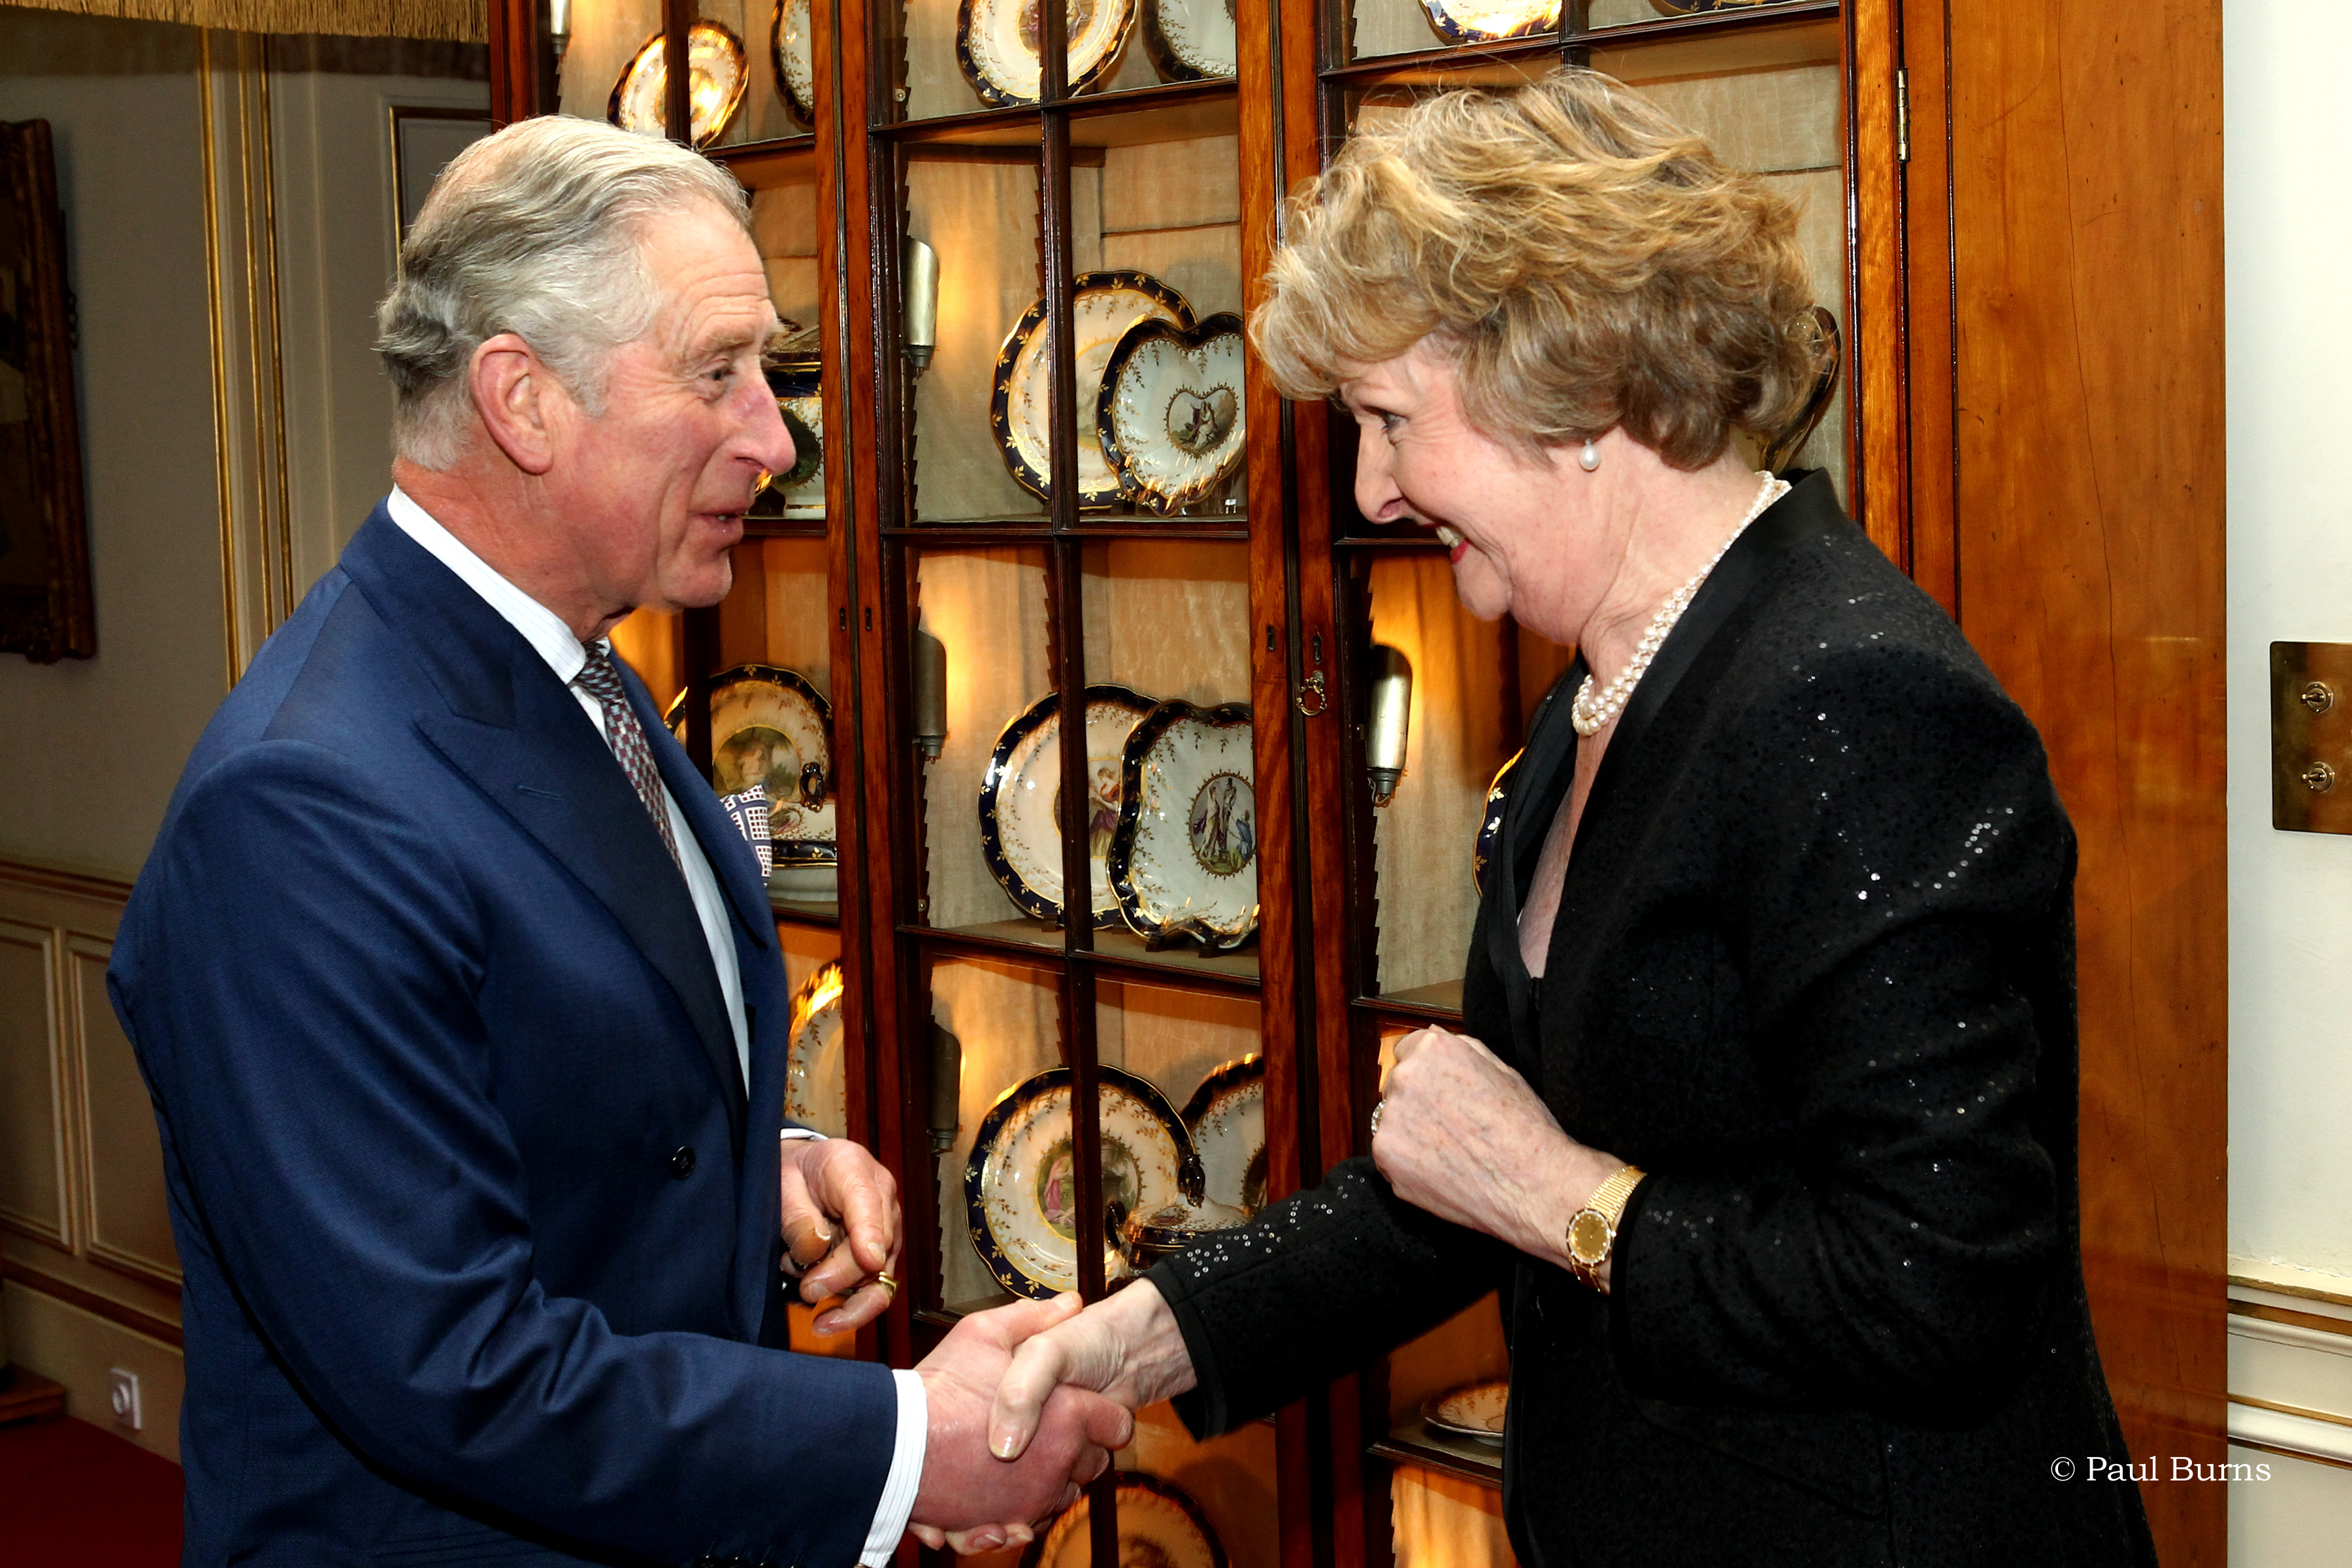 HRH the Prince of Wales and Dame Penelope Keith, DBE DL